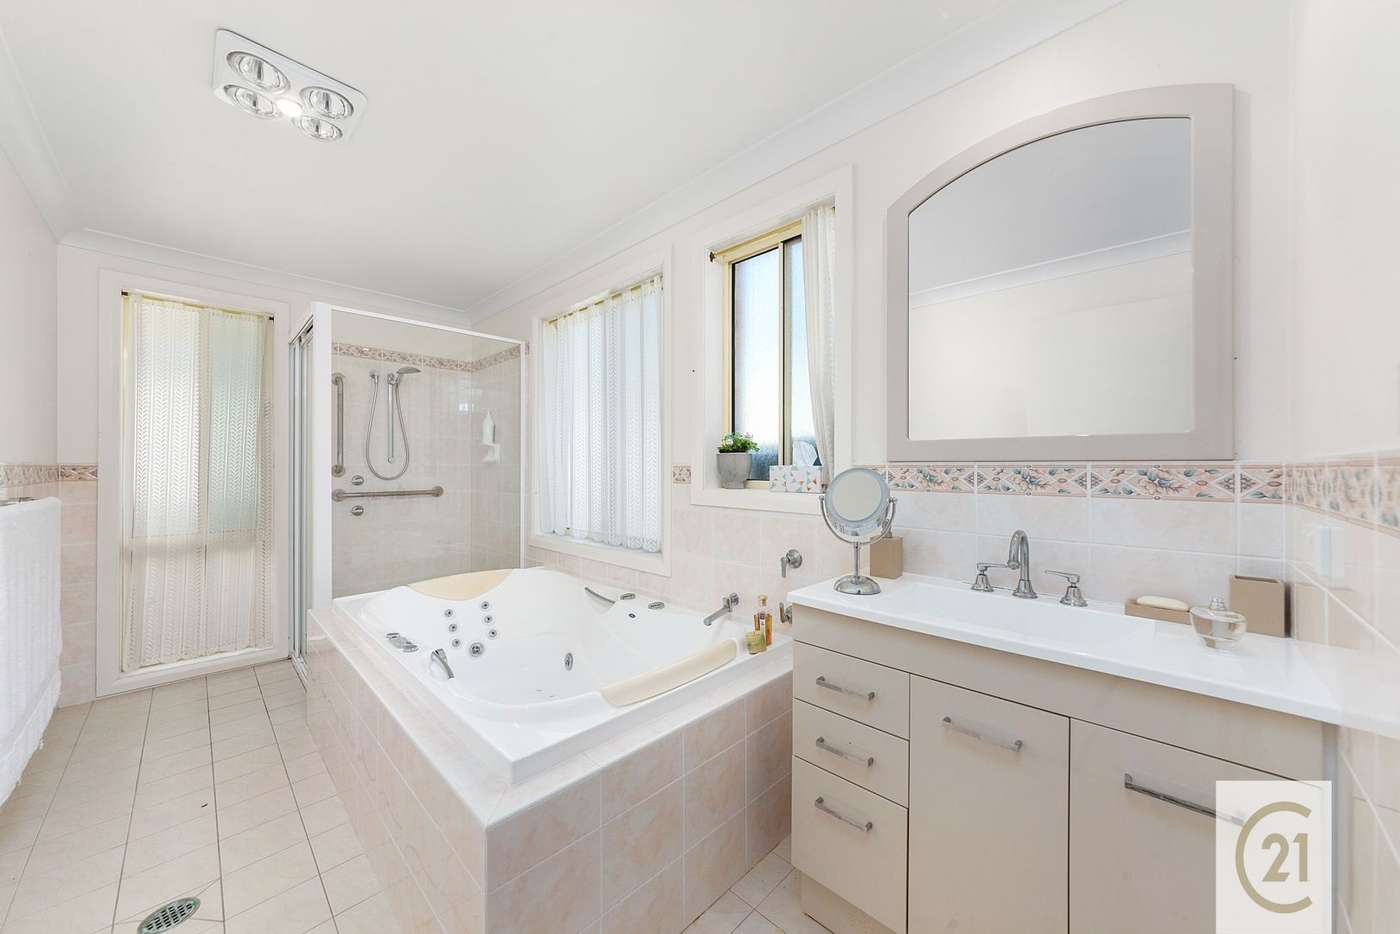 Sixth view of Homely house listing, 23 Shores Close, Salamander Bay NSW 2317